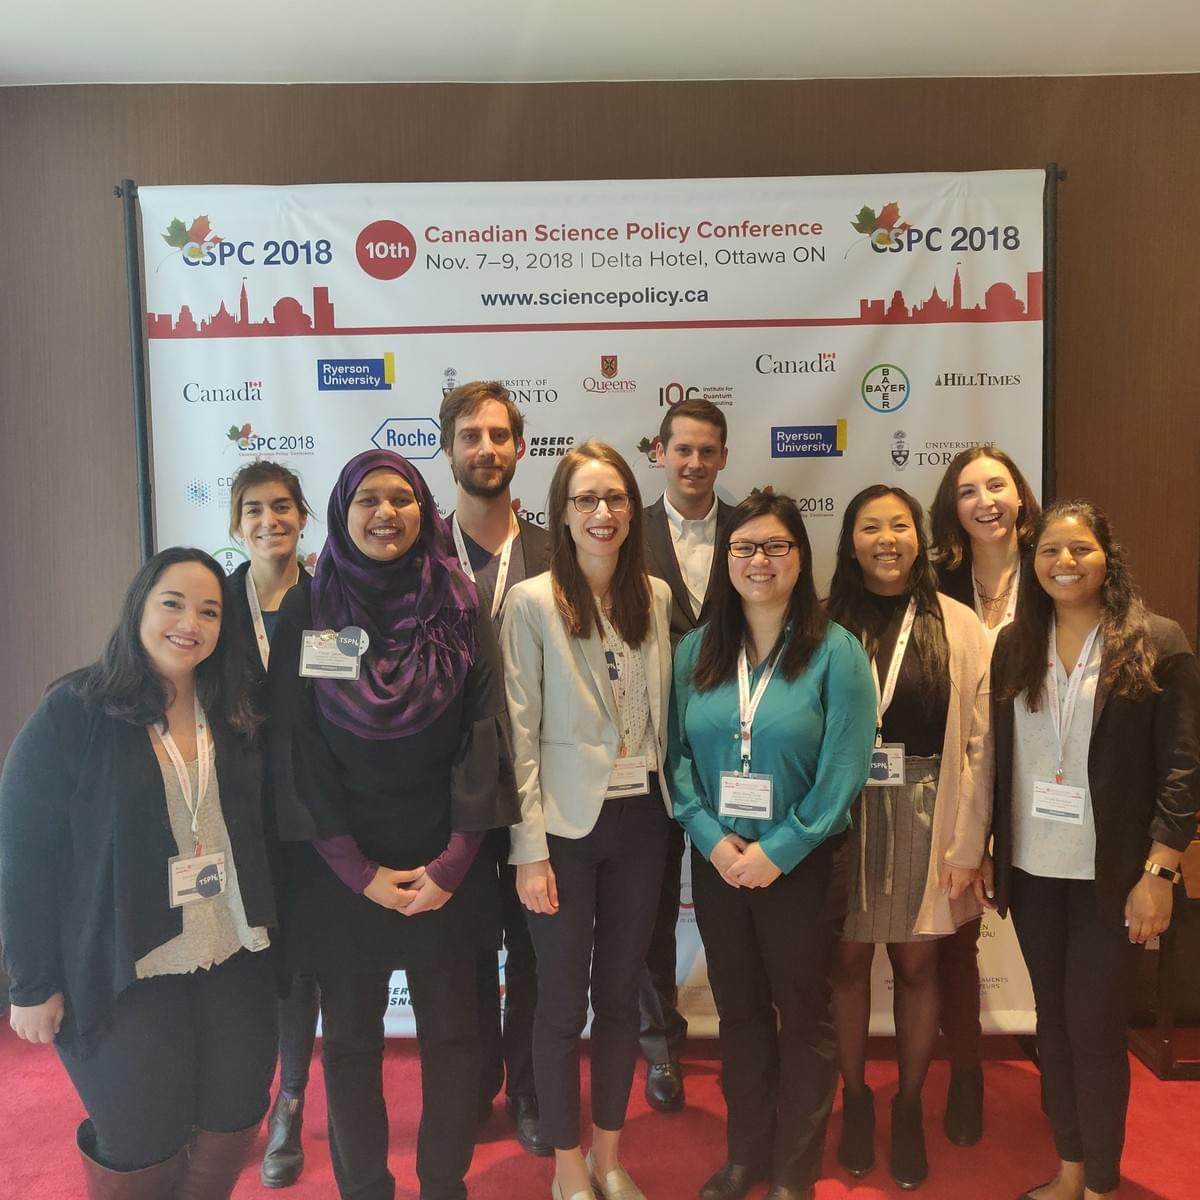 Photo of entire Toronto Science Policy Network team of volunteers at the 2018 Canadian Science Policy Conference.